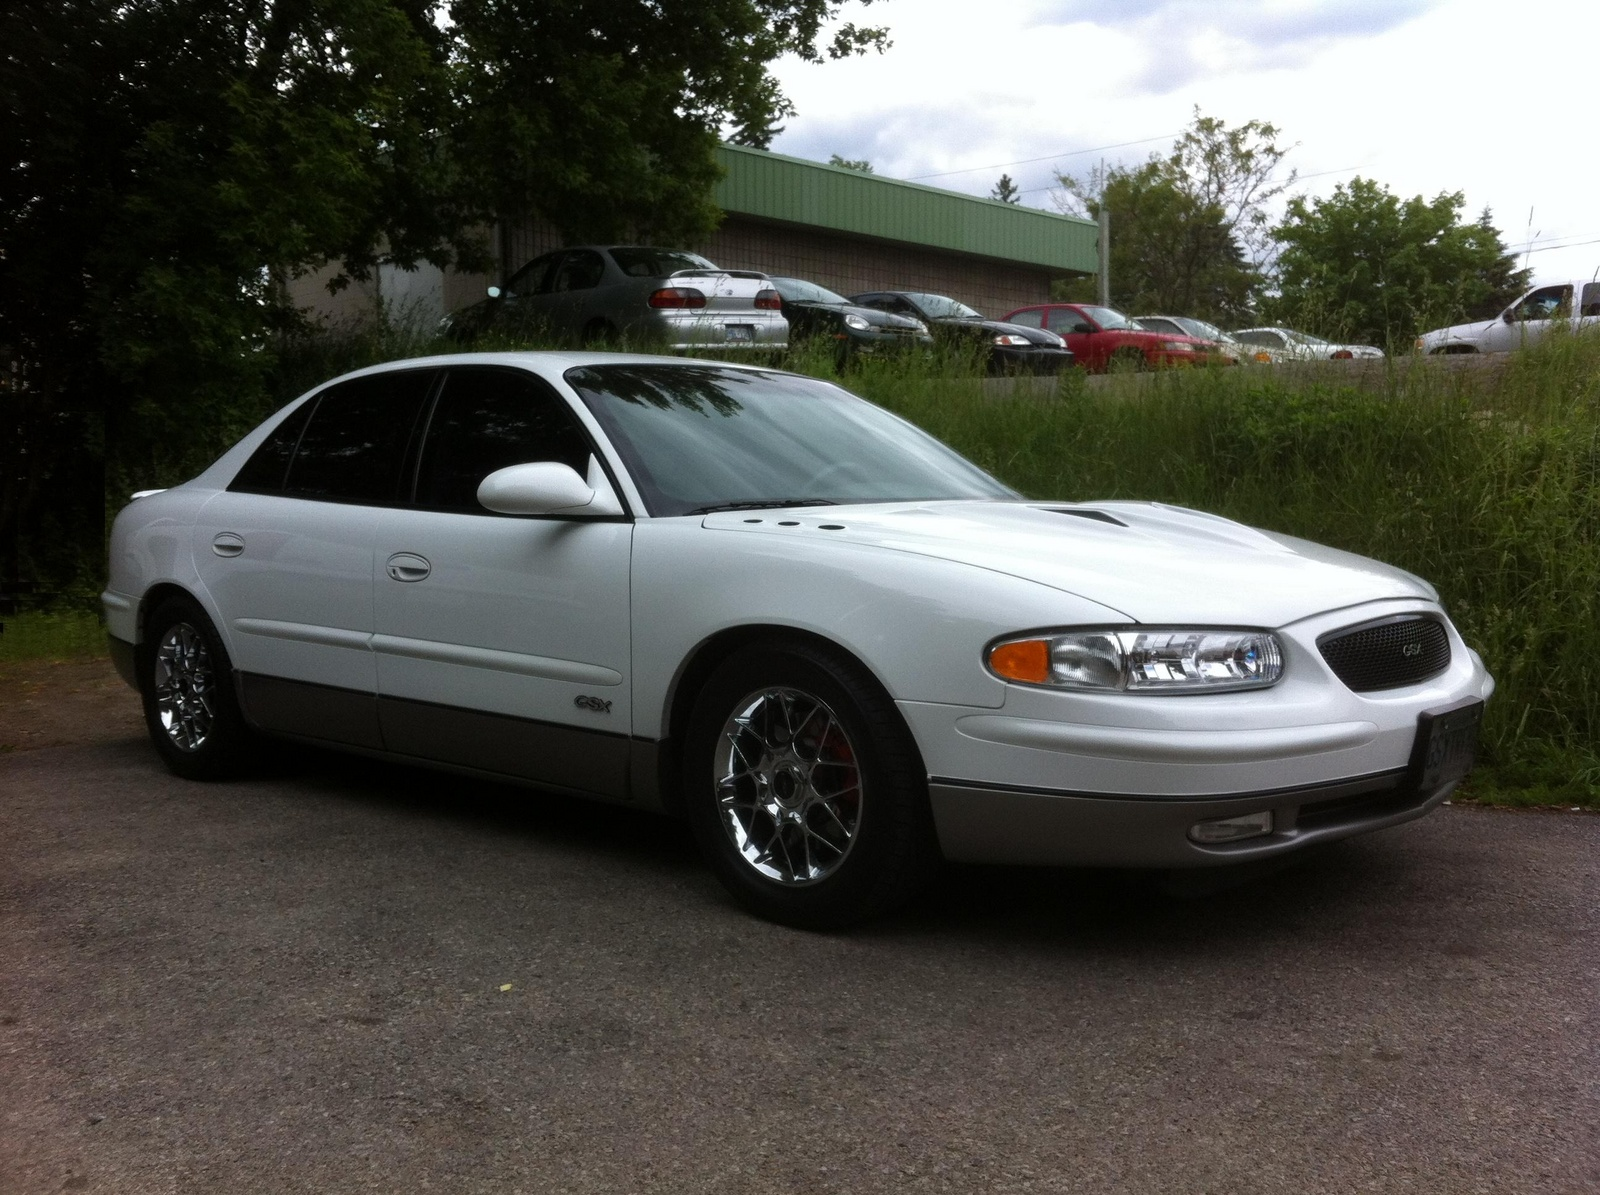 Buick Regal Gs Pic on 1989 Buick Electra Park Avenue